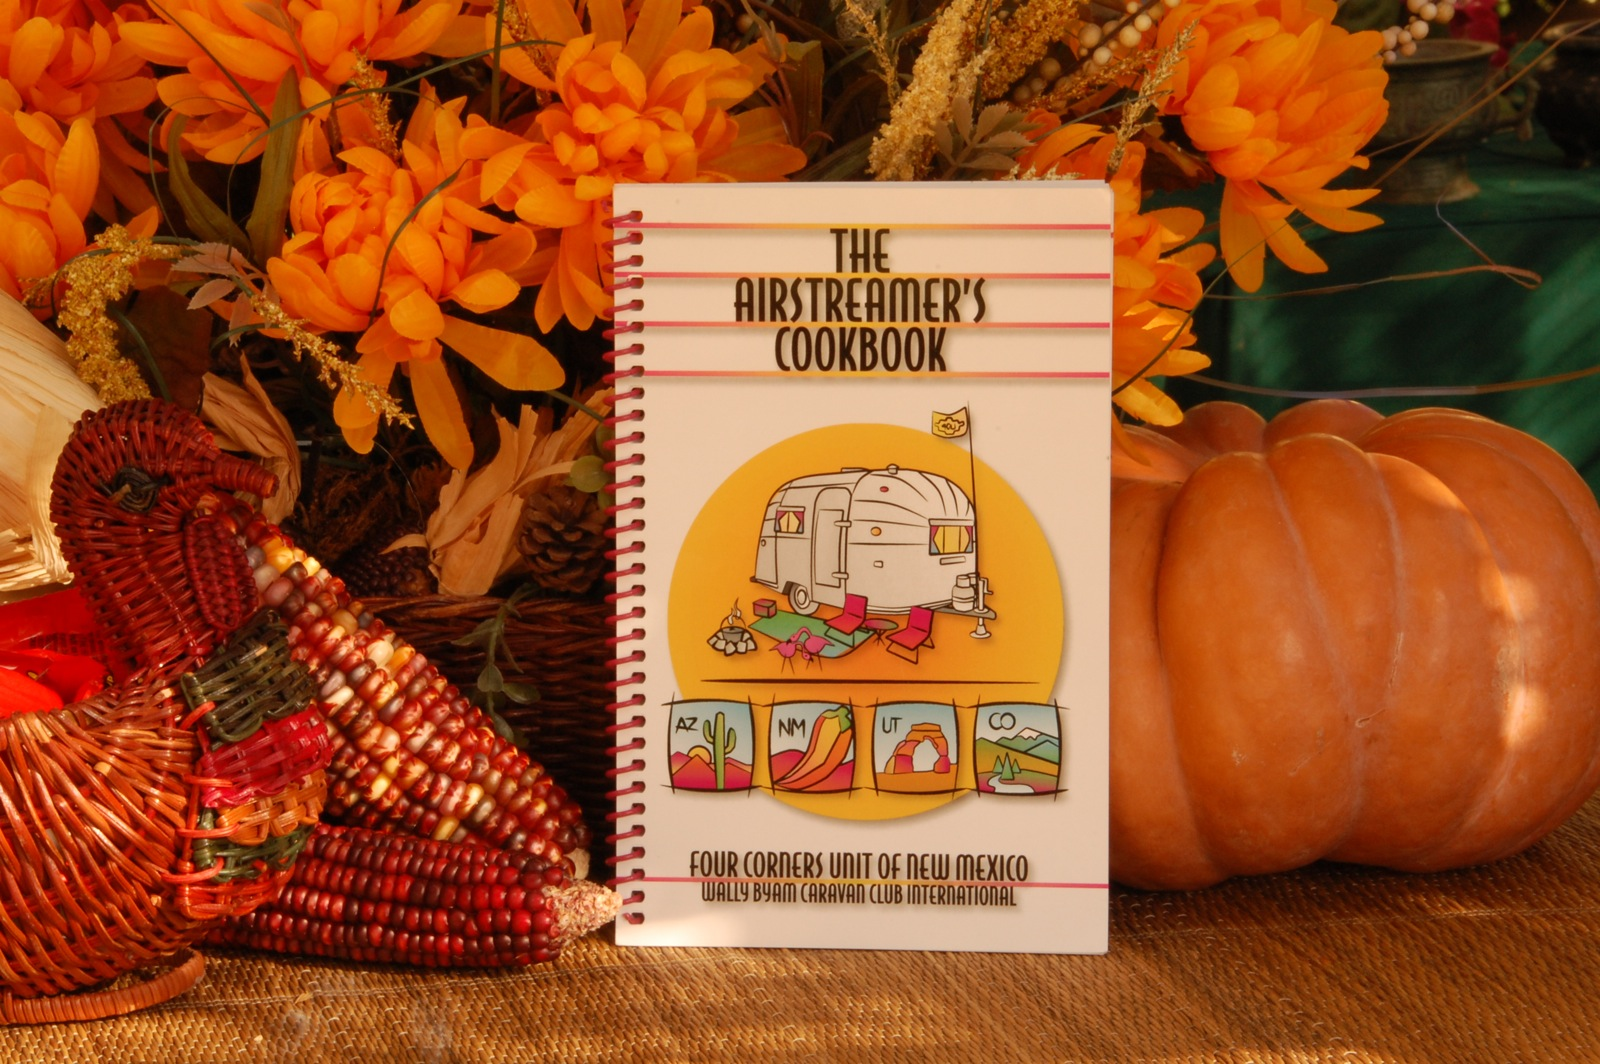 Click image for larger version  Name:DSC_0076 The Airstreamer's Cookbook.jpg Views:86 Size:505.3 KB ID:145923